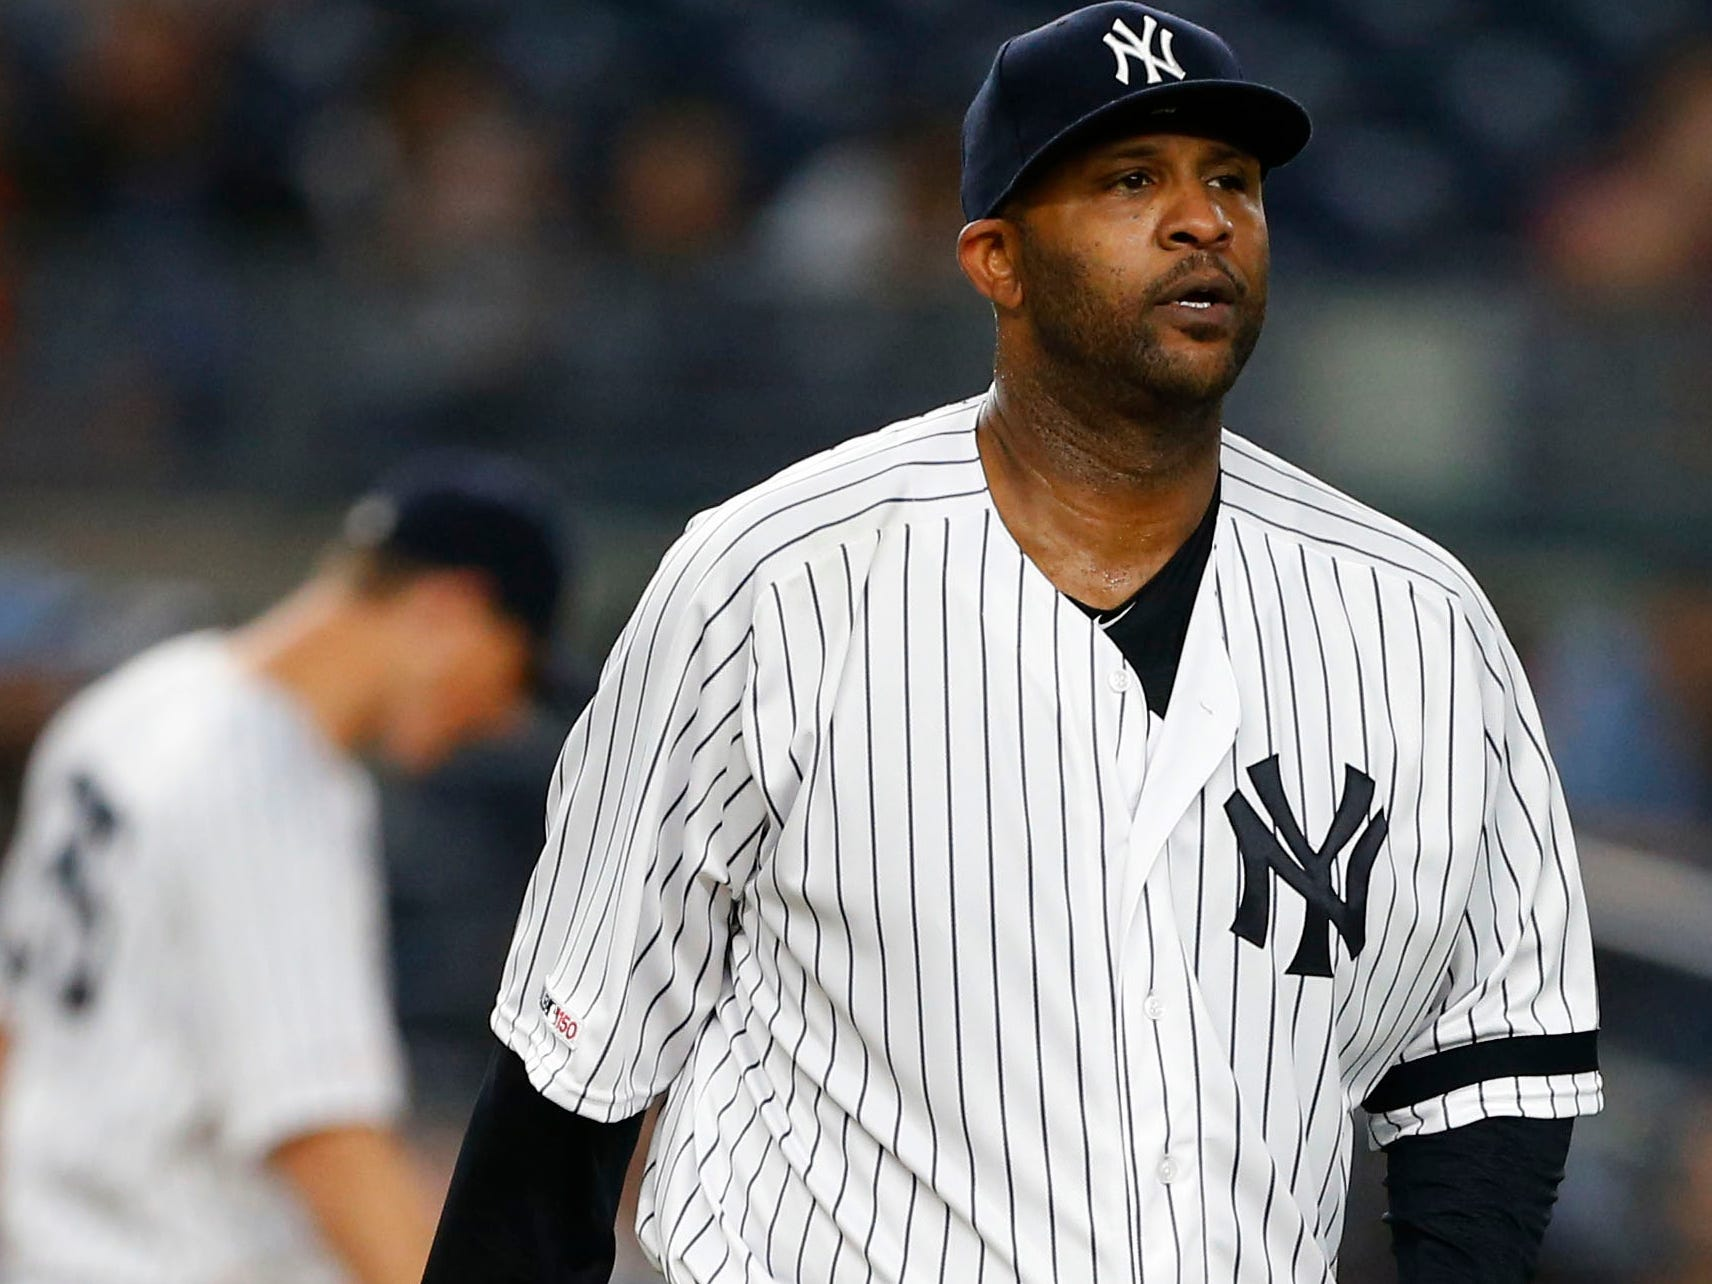 Apr 19, 2019; Bronx, NY, USA;  New York Yankees starting pitcher CC Sabathia (52) reacts after the Kansas City Royals scored a run in the third inning at Yankee Stadium.